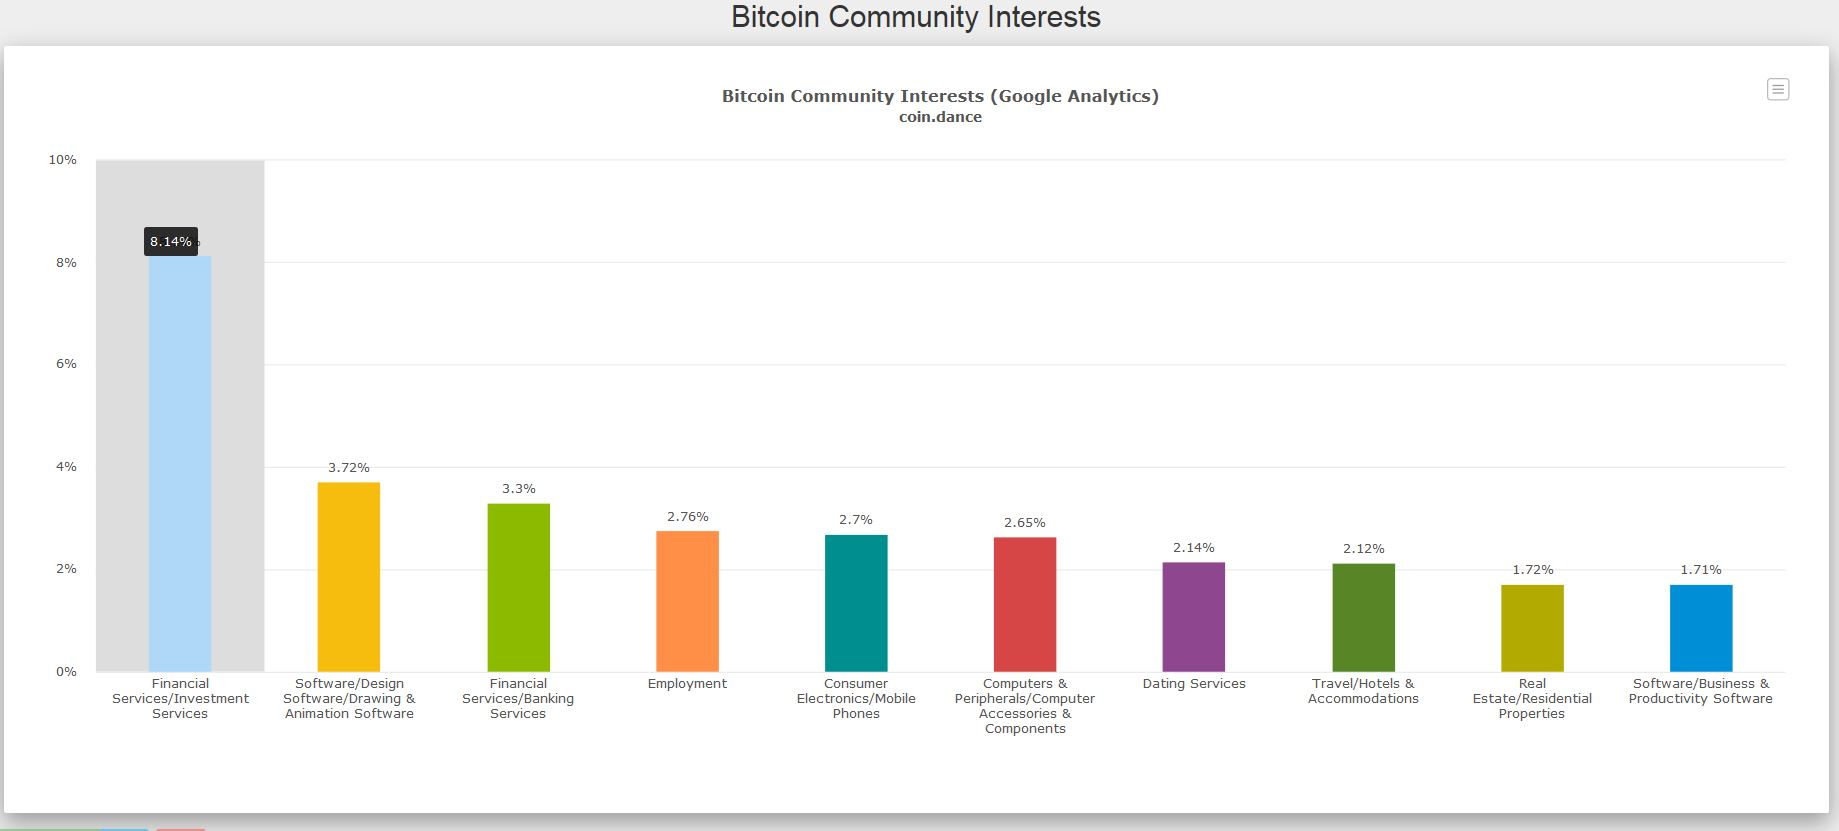 Bitcoin Community Interests